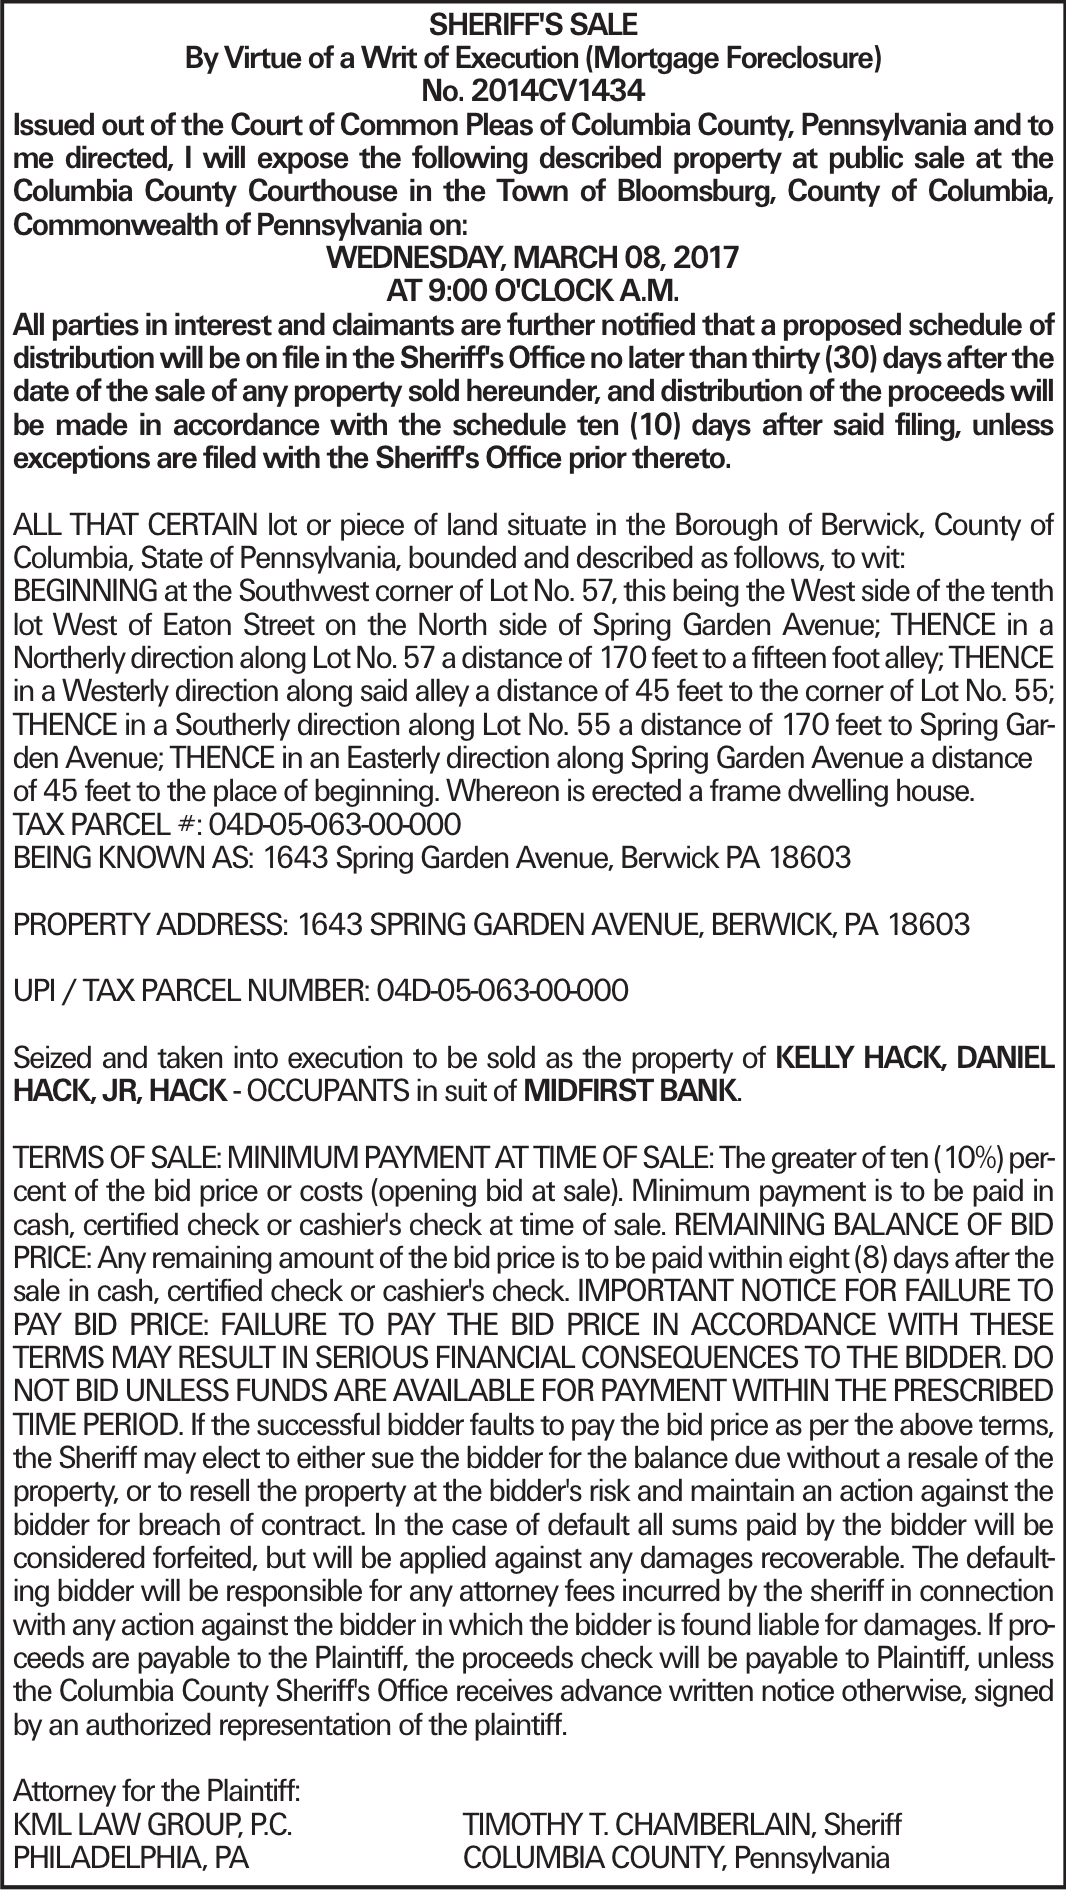 SHERIFF'S SALE By Virtue of a Writ of Execution (Mortgage Foreclosure) No. 2014CV1434 Issued out of the Court of Common Pleas of Columbia County, Pennsylvania and to me directed, I will expose the following described property at public sale at the Columbia County Courthouse in the Town of Bloomsburg, County of Columbia, Commonwealth of Pennsylvania on: WEDNESDAY, MARCH 08, 2017 AT 9:00 O'CLOCK A.M. All parties in interest and claimants are further notified that a proposed schedule of distribution will be on file in the Sheriff's Office no later than thirty (30) days after the date of the sale of any property sold hereunder, and distribution of the proceeds will be made in accordance with the schedule ten (10) days after said filing, unless exceptions are filed with the Sheriff's Office prior thereto. ALL THAT CERTAIN lot or piece of land situate in the Borough of Berwick, County of Columbia, State of Pennsylvania, bounded and described as follows, to wit: BEGINNING at the Southwest corner of Lot No. 57, this being the West side of the tenth lot West of Eaton Street on the North side of Spring Garden Avenue; THENCE in a Northerly direction along Lot No. 57 a distance of 170 feet to a fifteen foot alley; THENCE in a Westerly direction along said alley a distance of 45 feet to the corner of Lot No. 55; THENCE in a Southerly direction along Lot No. 55 a distance of 170 feet to Spring Garden Avenue; THENCE in an Easterly direction along Spring Garden Avenue a distance of 45 feet to the place of beginning. Whereon is erected a frame dwelling house. TAX PARCEL #: 04D-05-063-00-000 BEING KNOWN AS: 1643 Spring Garden Avenue, Berwick PA 18603 PROPERTY ADDRESS: 1643 SPRING GARDEN AVENUE, BERWICK, PA 18603 UPI / TAX PARCEL NUMBER: 04D-05-063-00-000 Seized and taken into execution to be sold as the property of KELLY HACK, DANIEL HACK, JR, HACK - OCCUPANTS in suit of MIDFIRST BANK. TERMS OF SALE: MINIMUM PAYMENT AT TIME OF SALE: The greater of ten (10%) percent of the bid price o